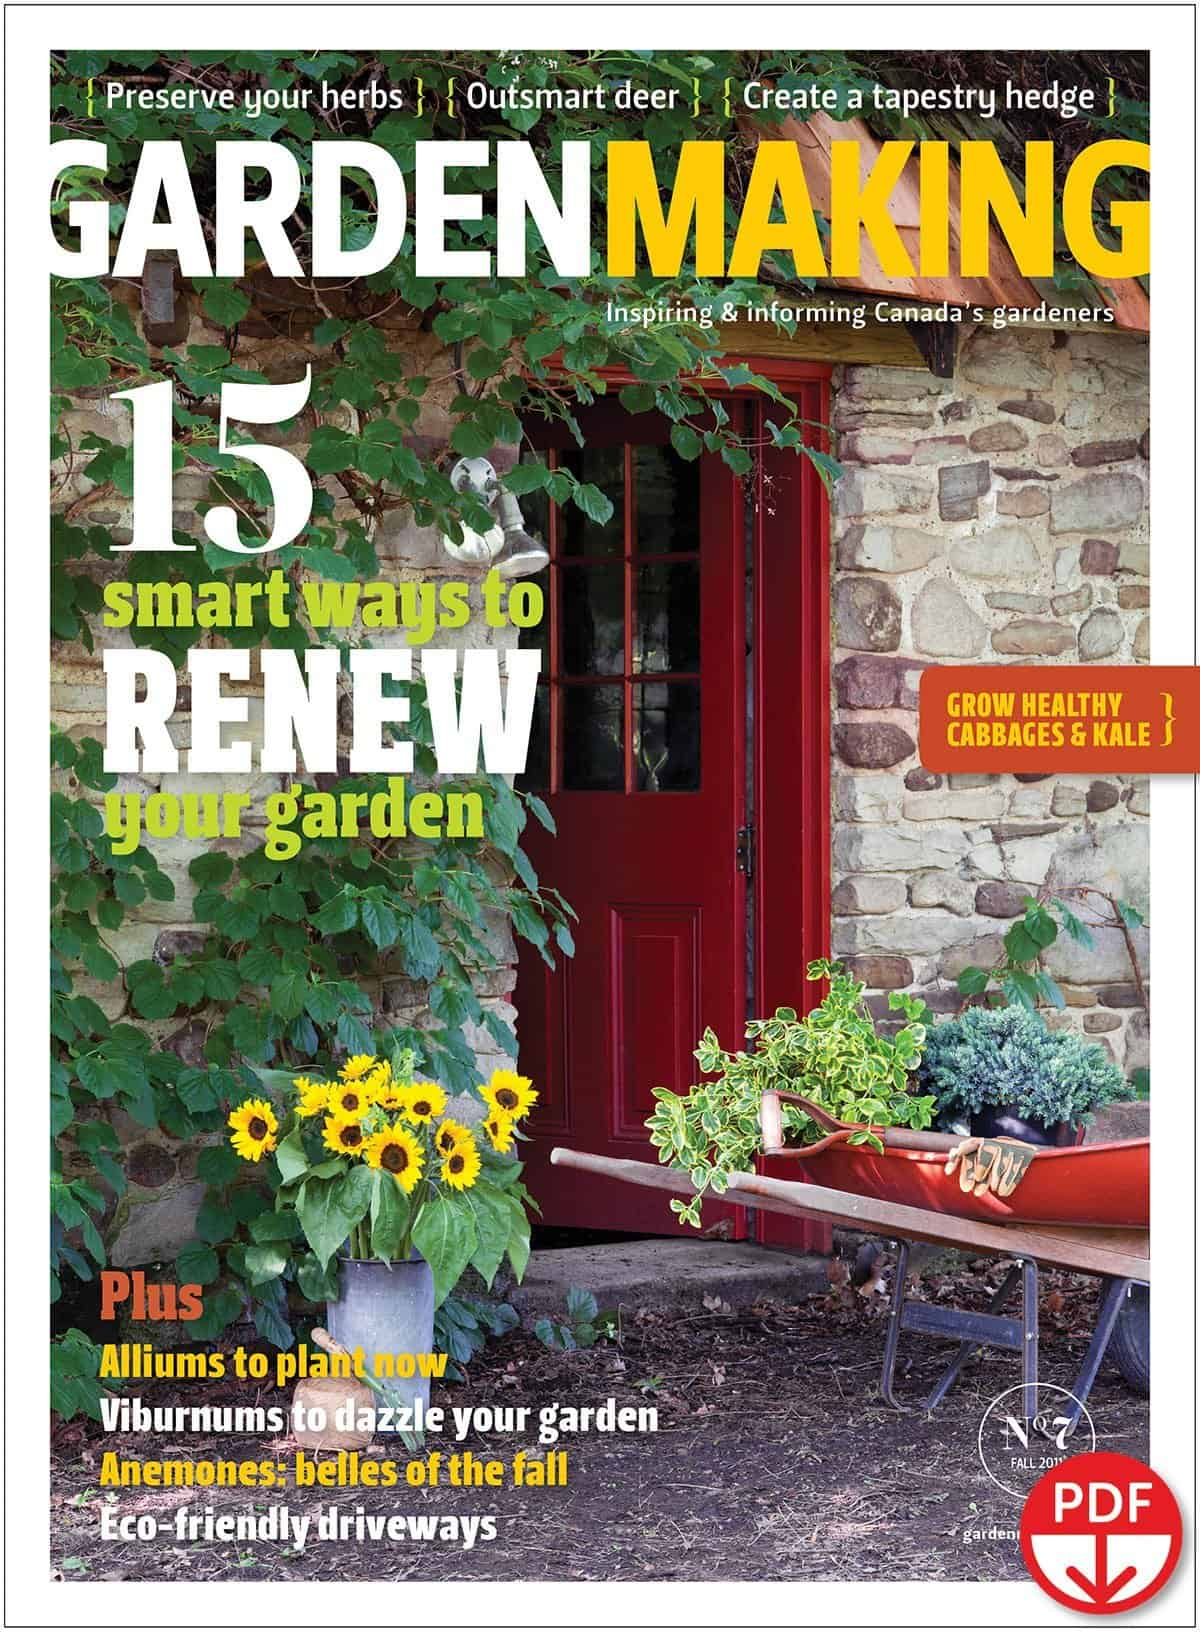 We have 15 smart ways for you to renew your garden. In the 70 pages of useful articles and inspiring photos, you'll find: